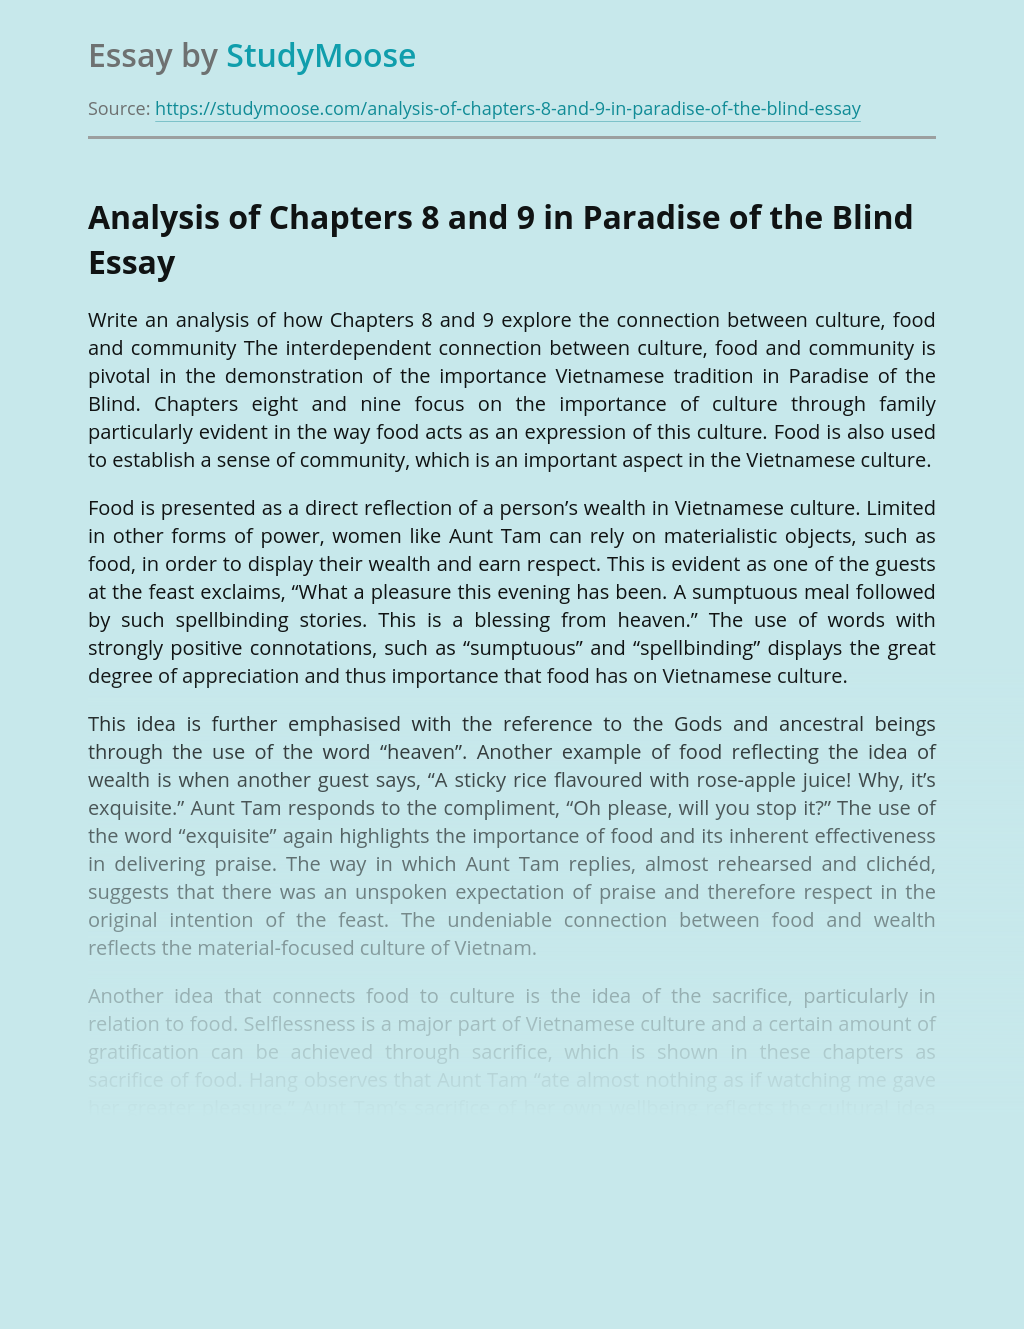 Analysis of Chapters 8 and 9 in Paradise of the Blind